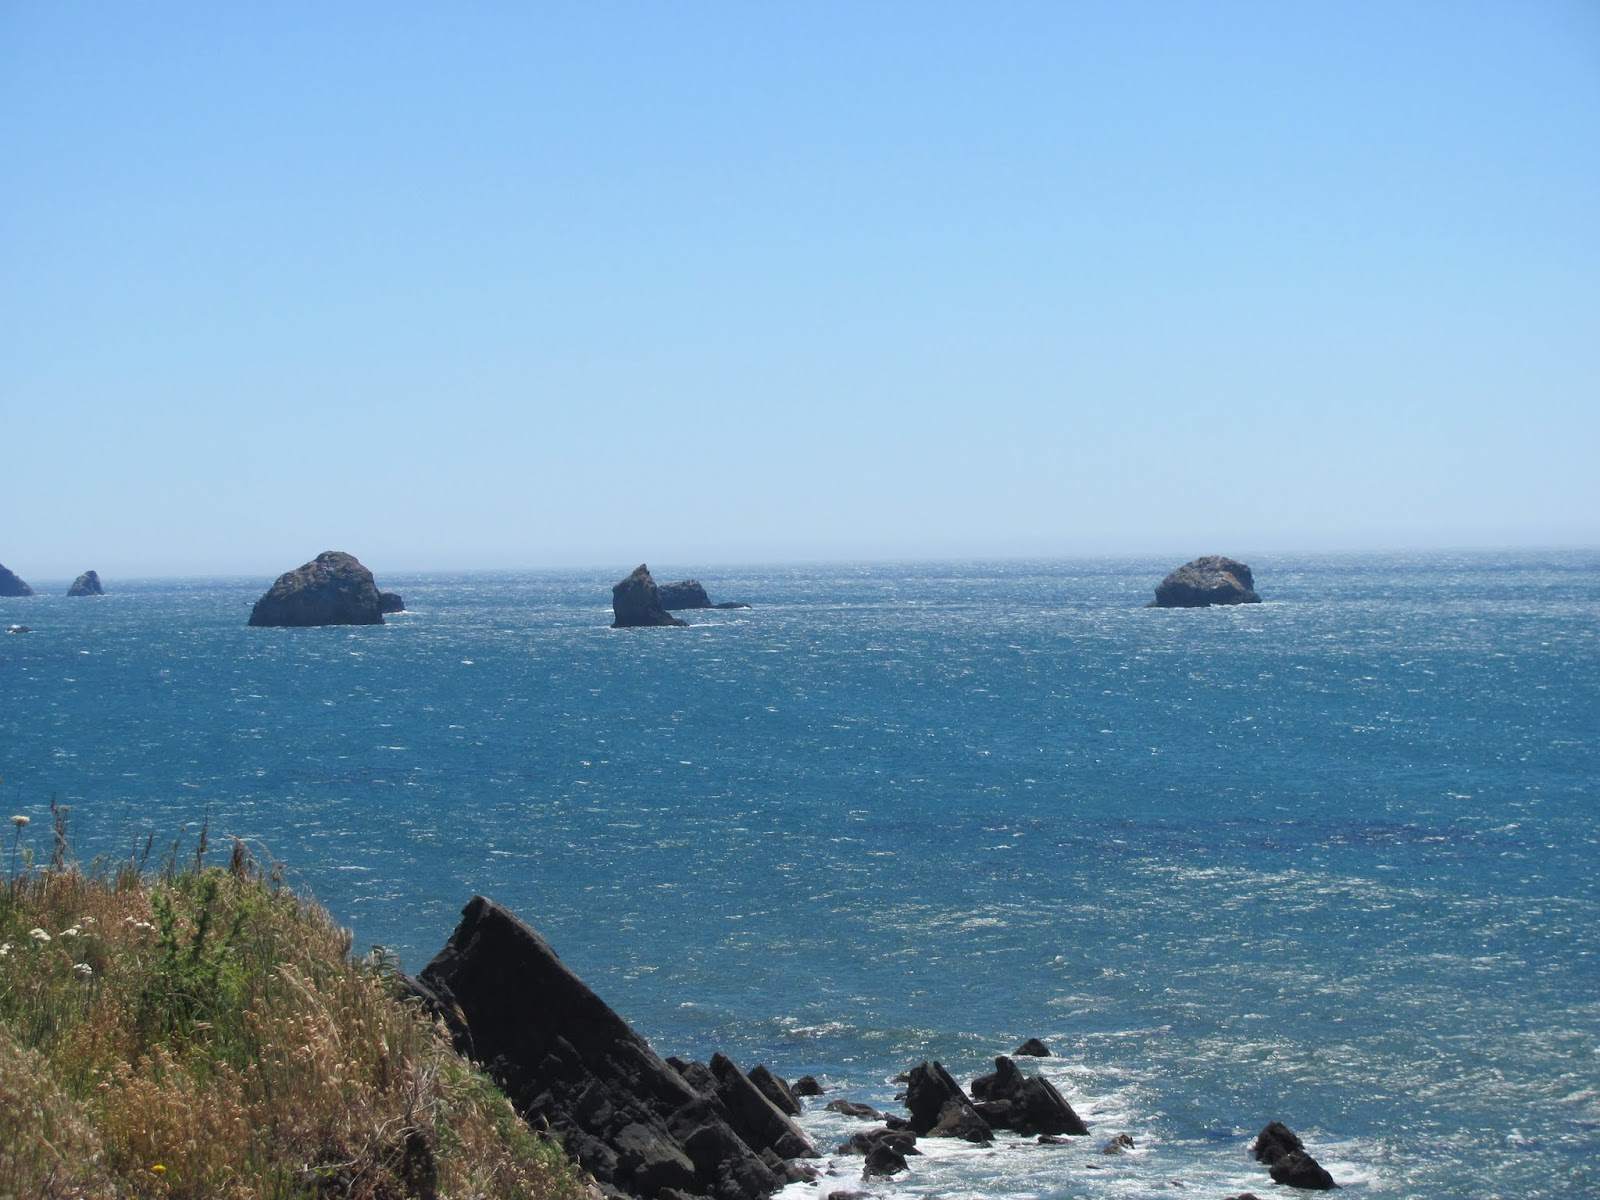 Rocks protrude from the blue water off the beach at Bullards Beach State Park, Oregon